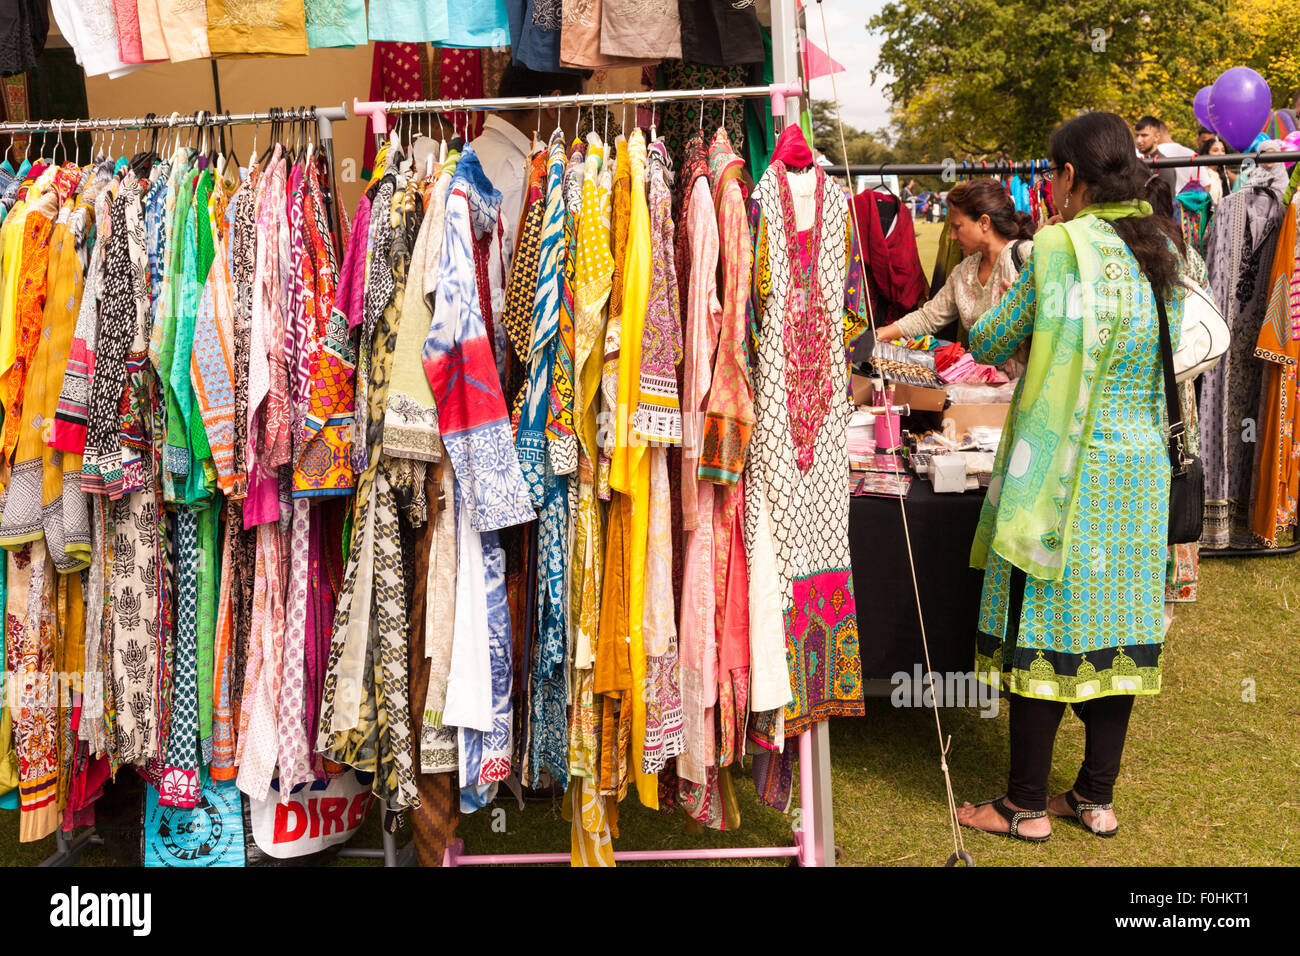 Asian Indian or Pakistani women's clothes on a rack for sale in an outdoor event, Birmingham UK Stock Photo